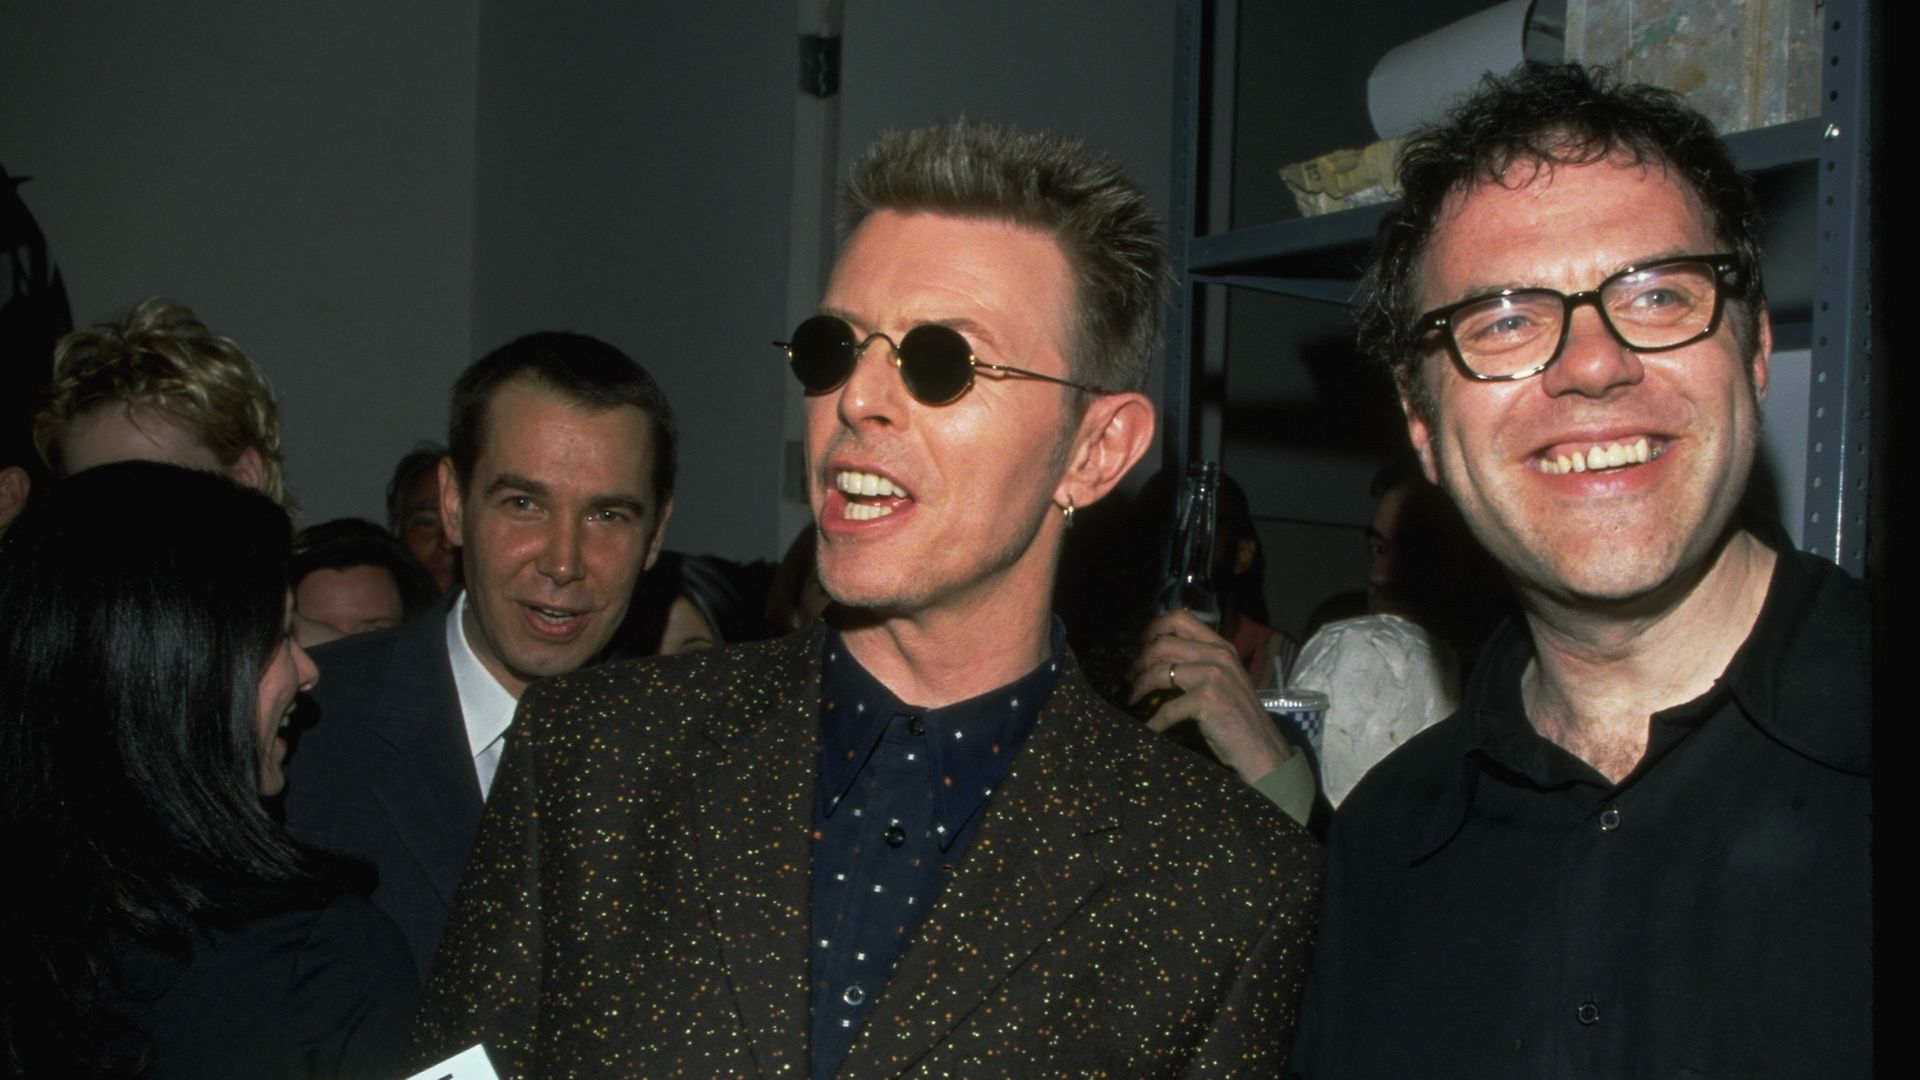 Jeff Koons, David Bowie and William Boyd at the launch of the fictive biography of Nat Tate - Credit: Corbis via Getty Images